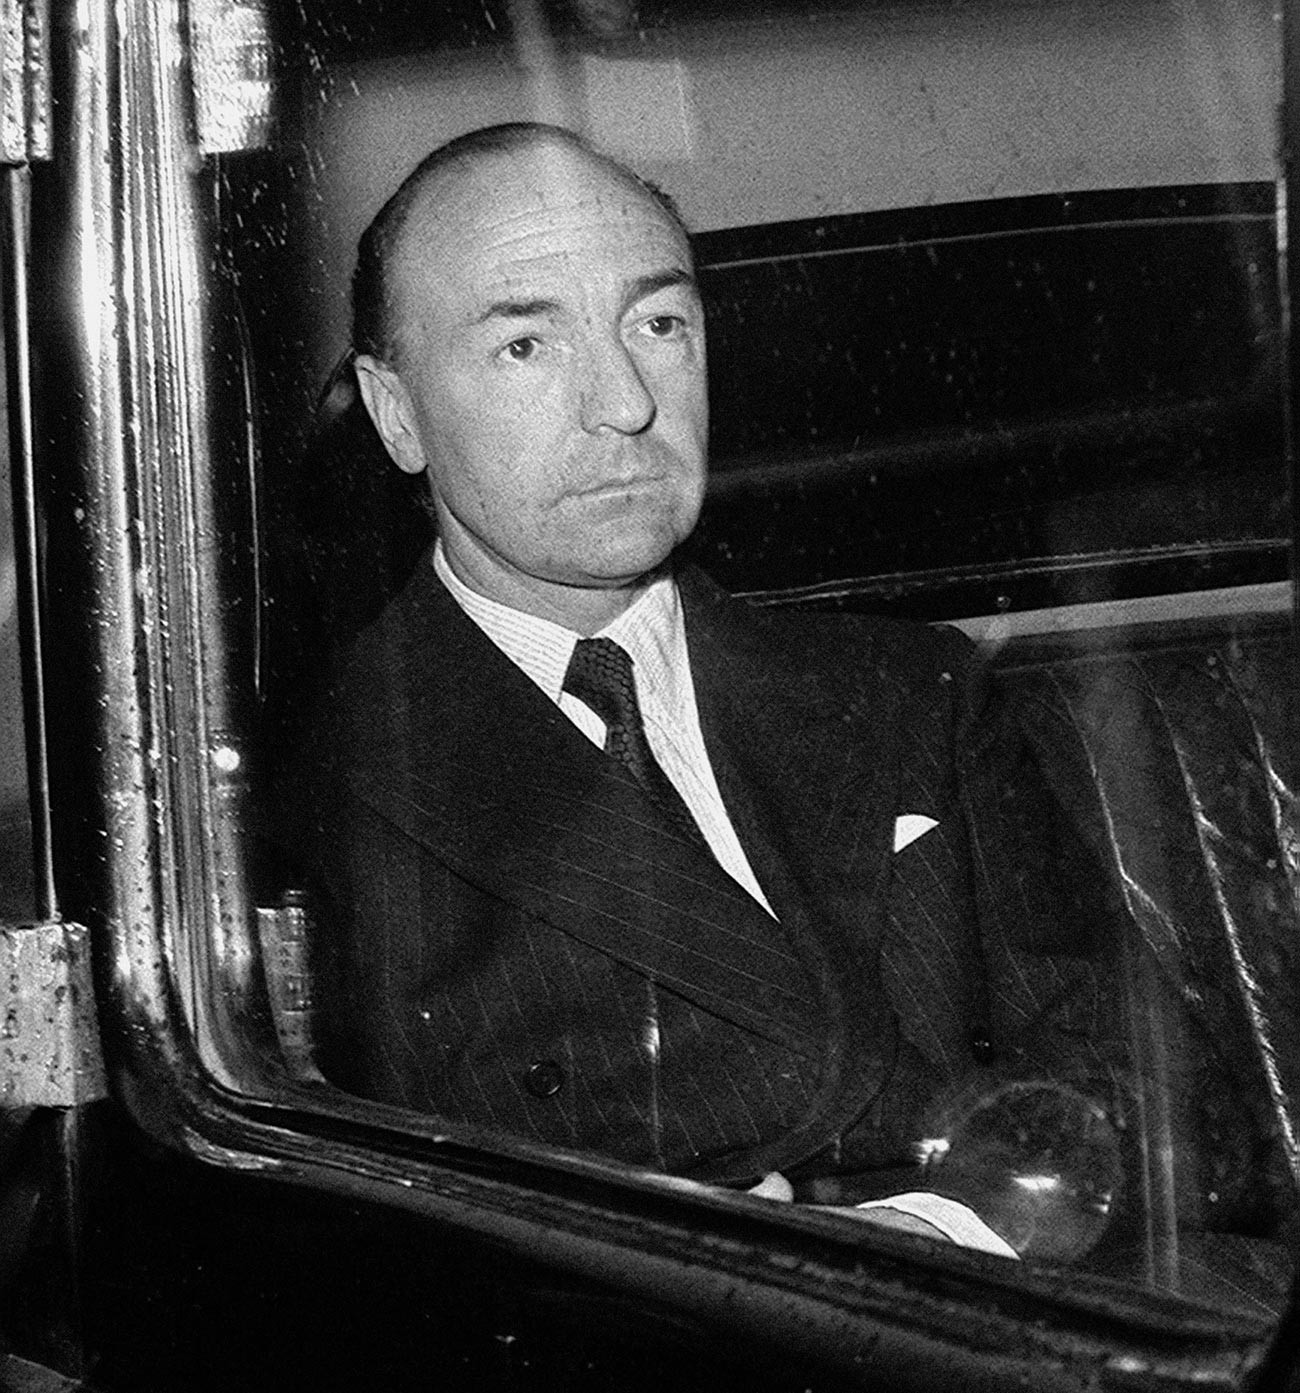 John Profumo after his resignation.